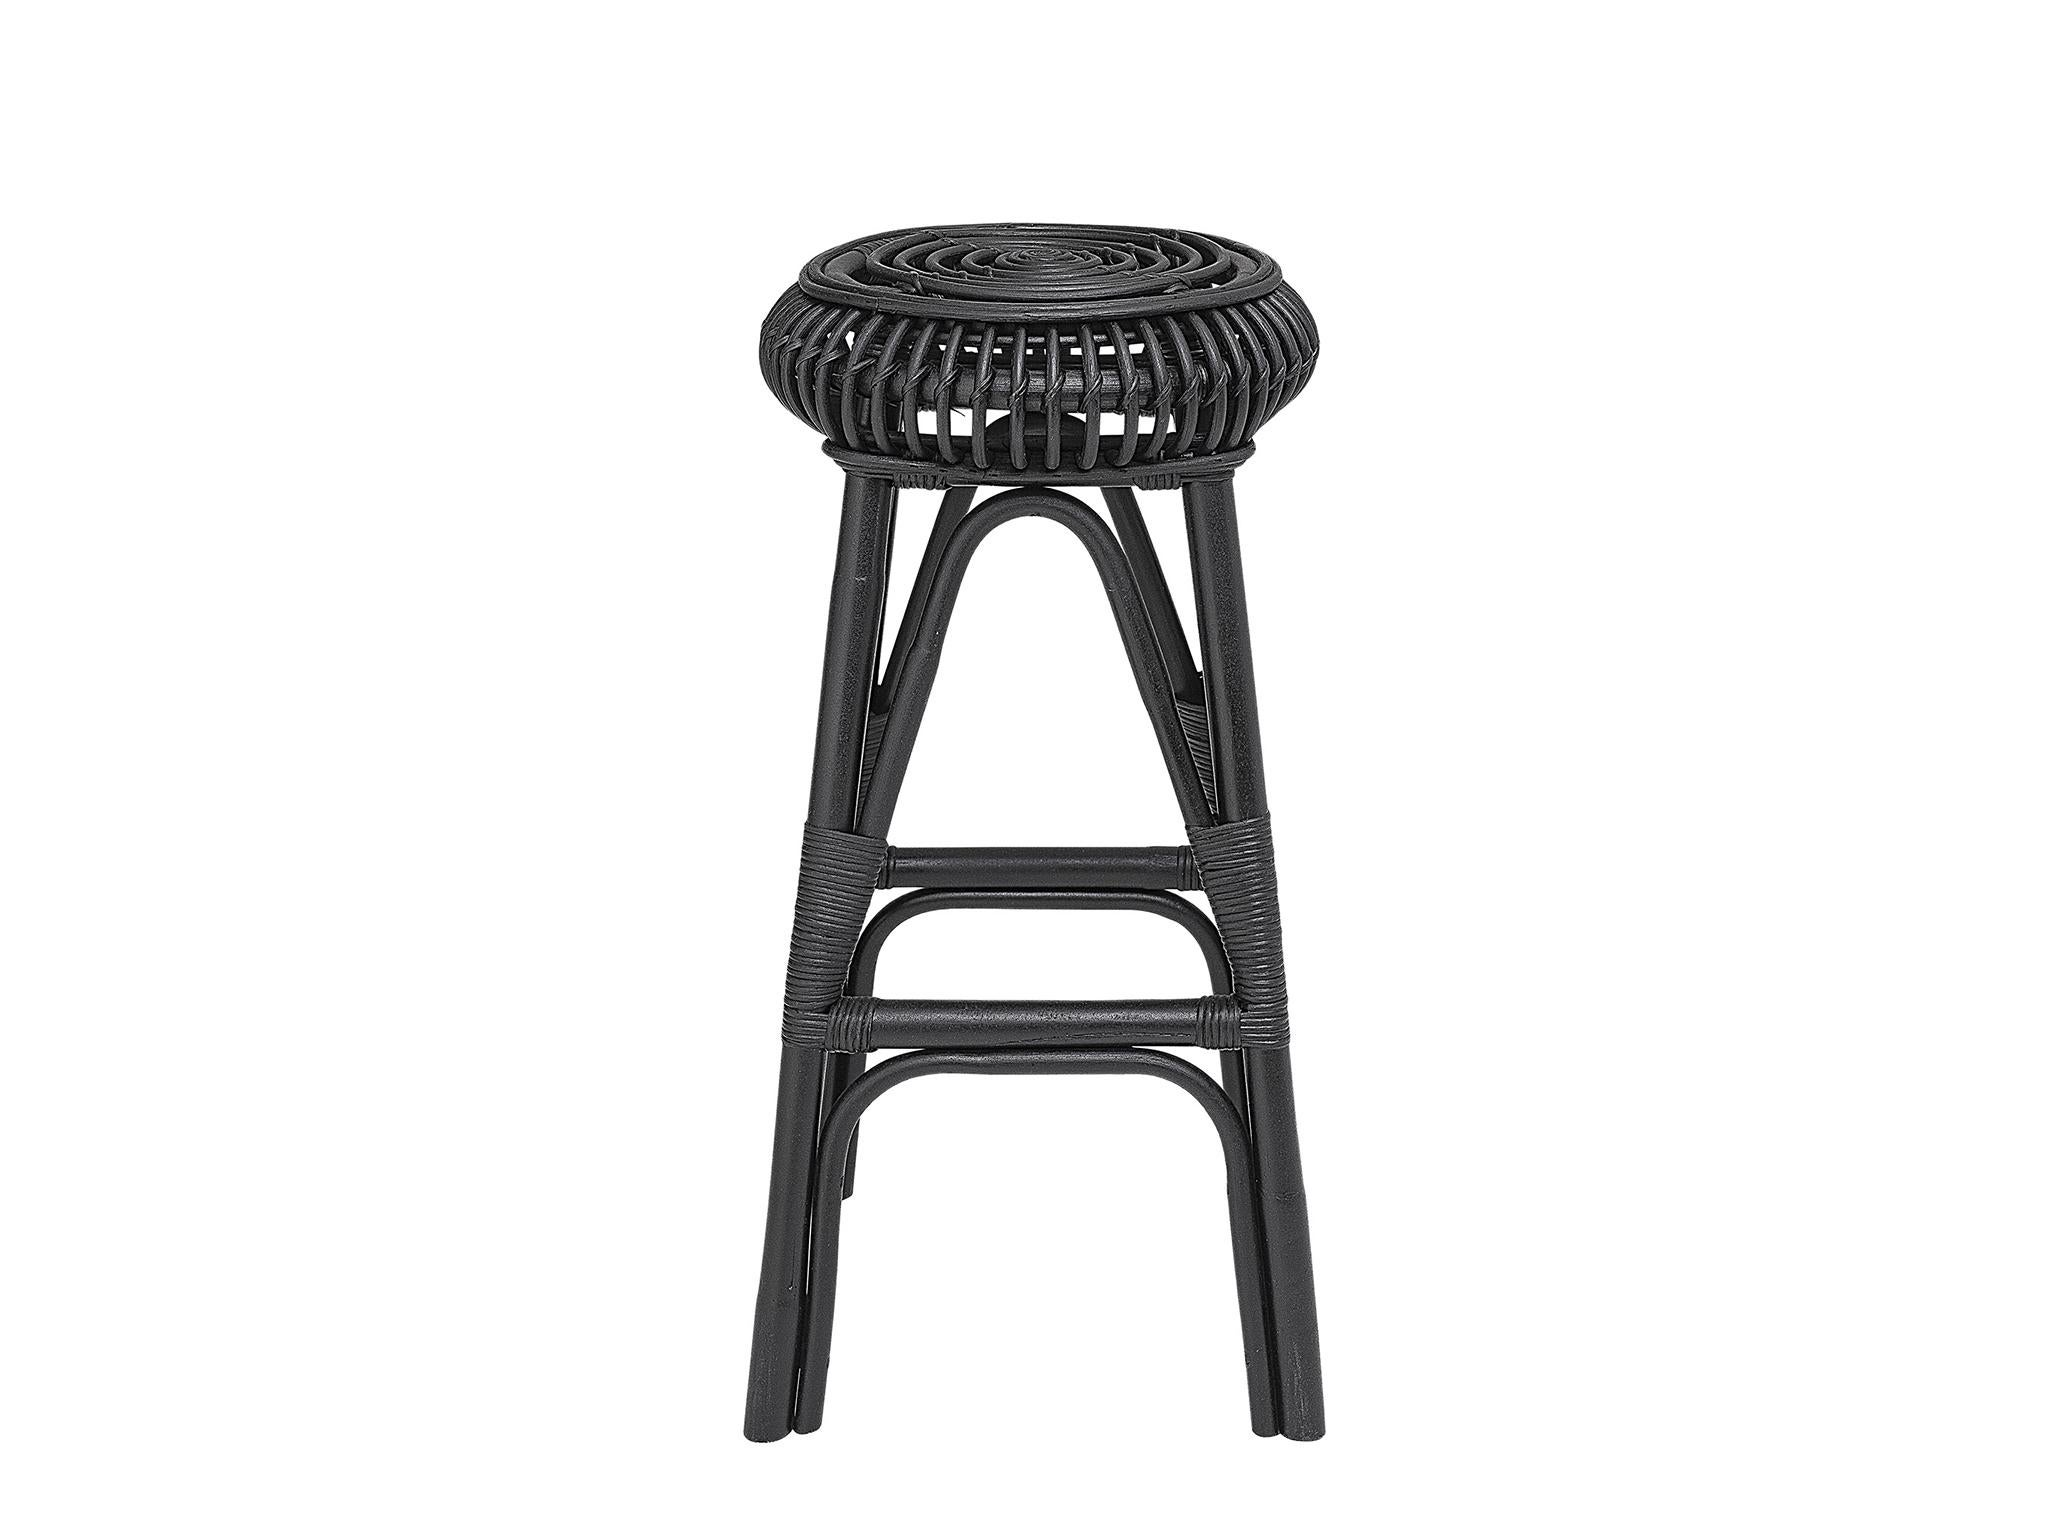 official photos 2b76e d13cd Best bar stools for a modern chic living space